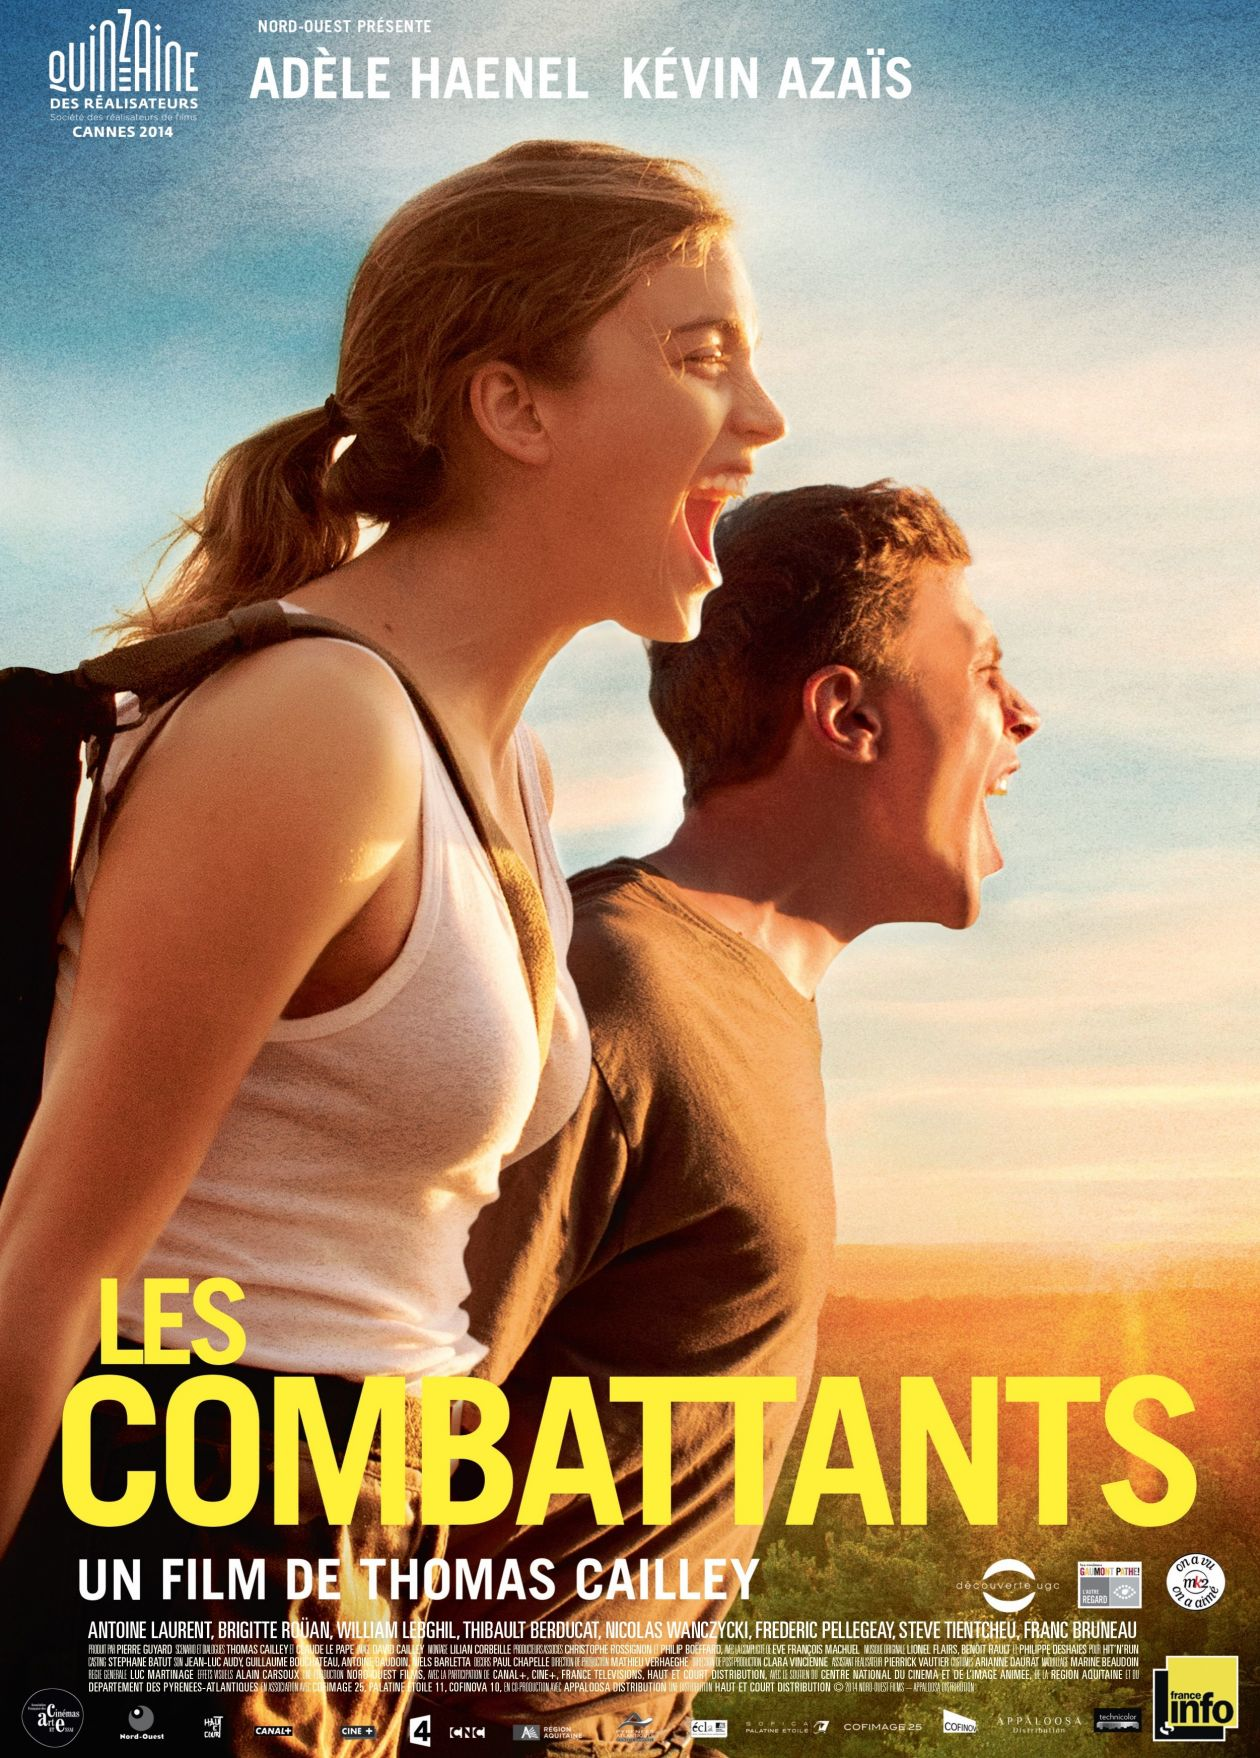 Adèle Haenel : Les Combattants - Thomas Cailley 2014 Movie Poster / Affiche film